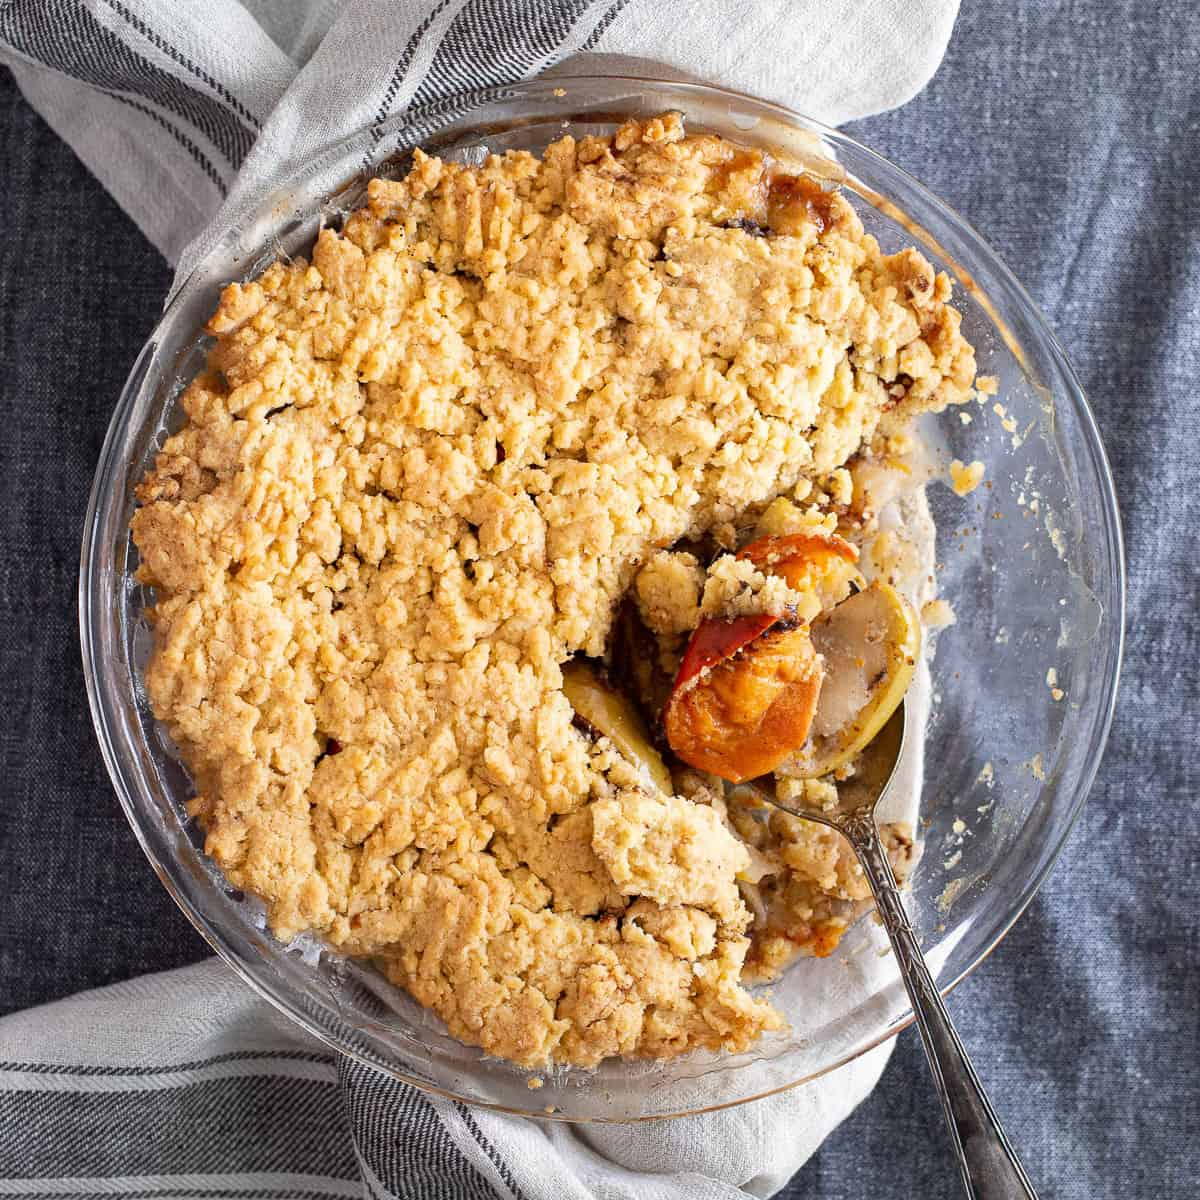 Persimmon crumble in a glass baking dish.